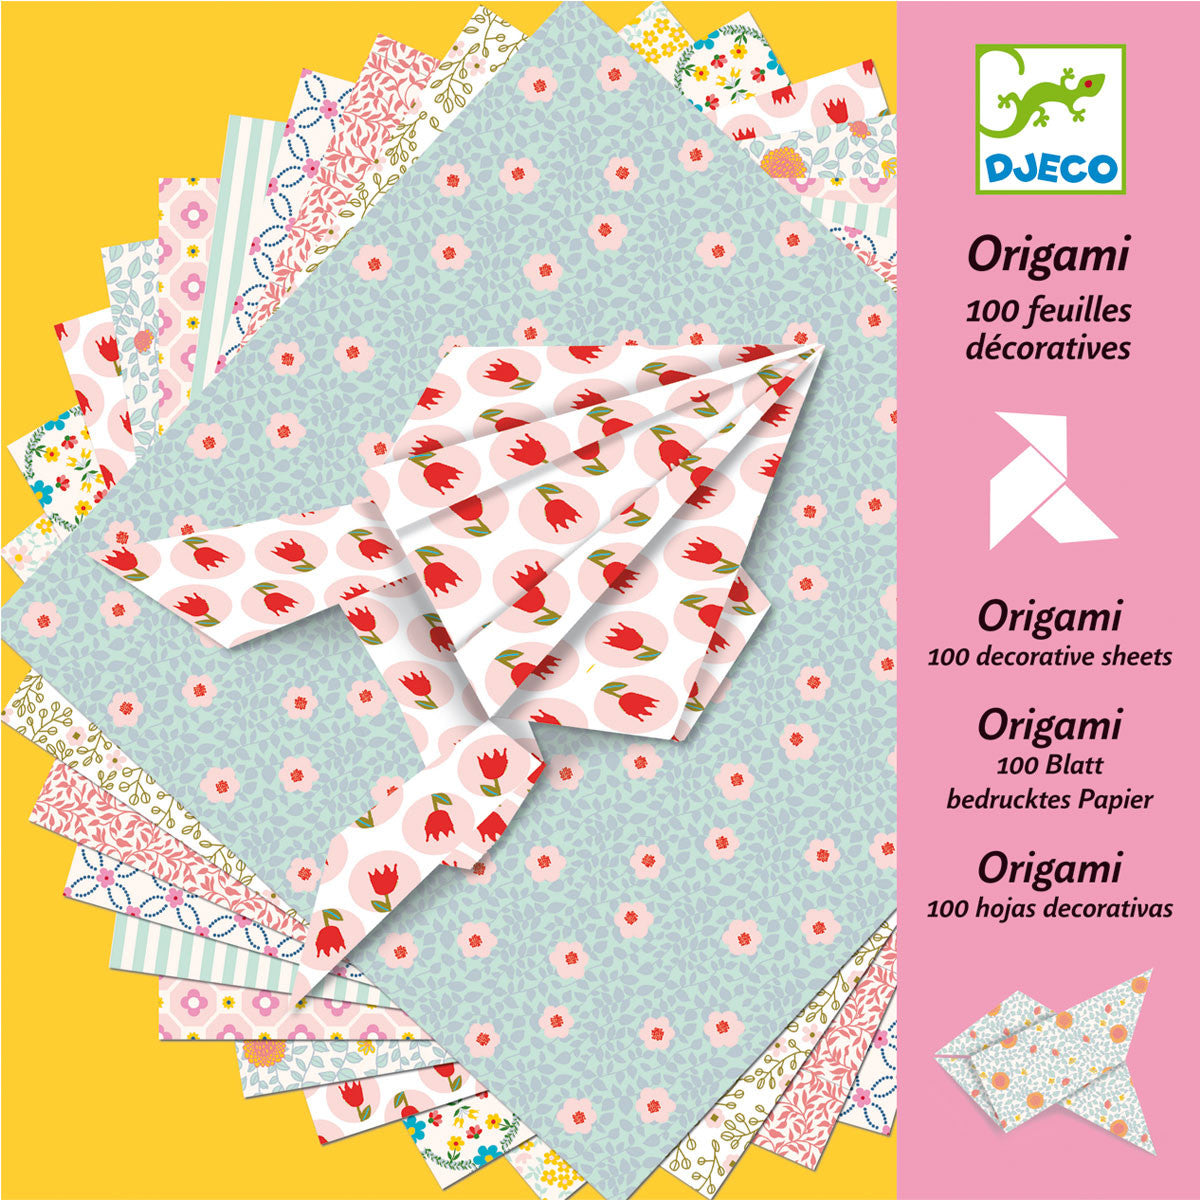 Djeco Origami 100 Sheets  Decorative Sheets - Djeco - Little Earth Nest - 4